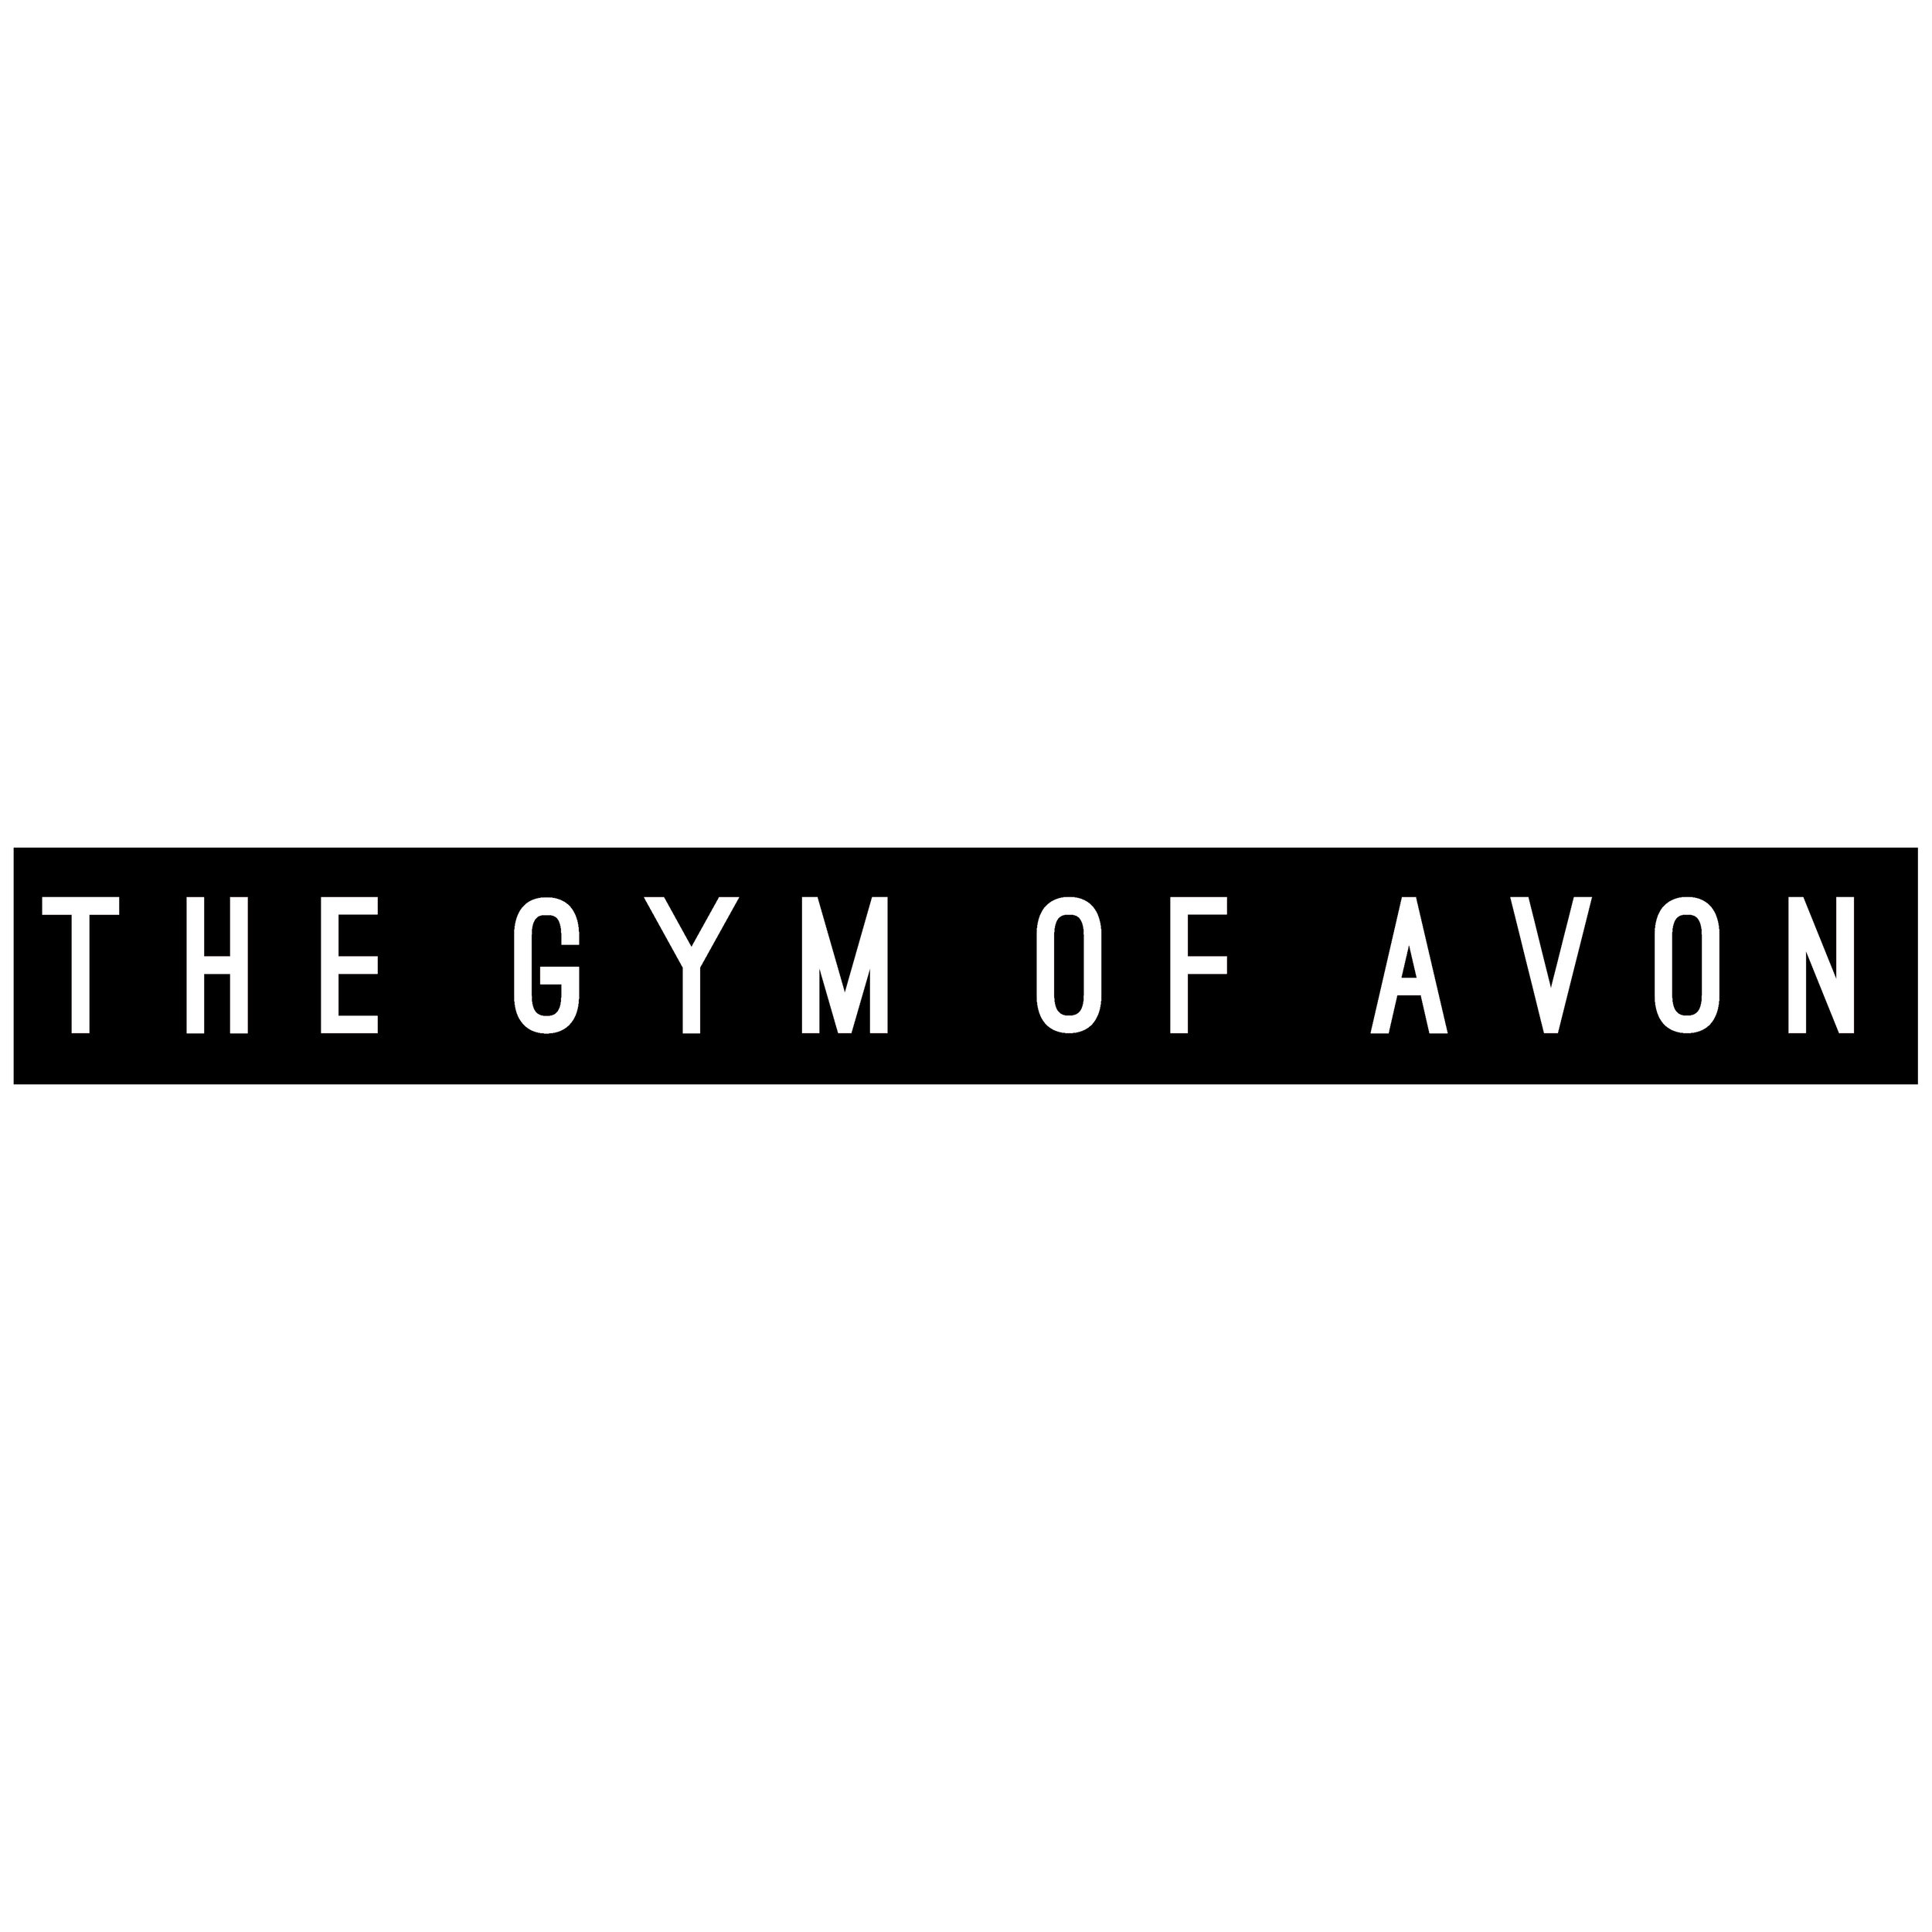 The Gym of Avon